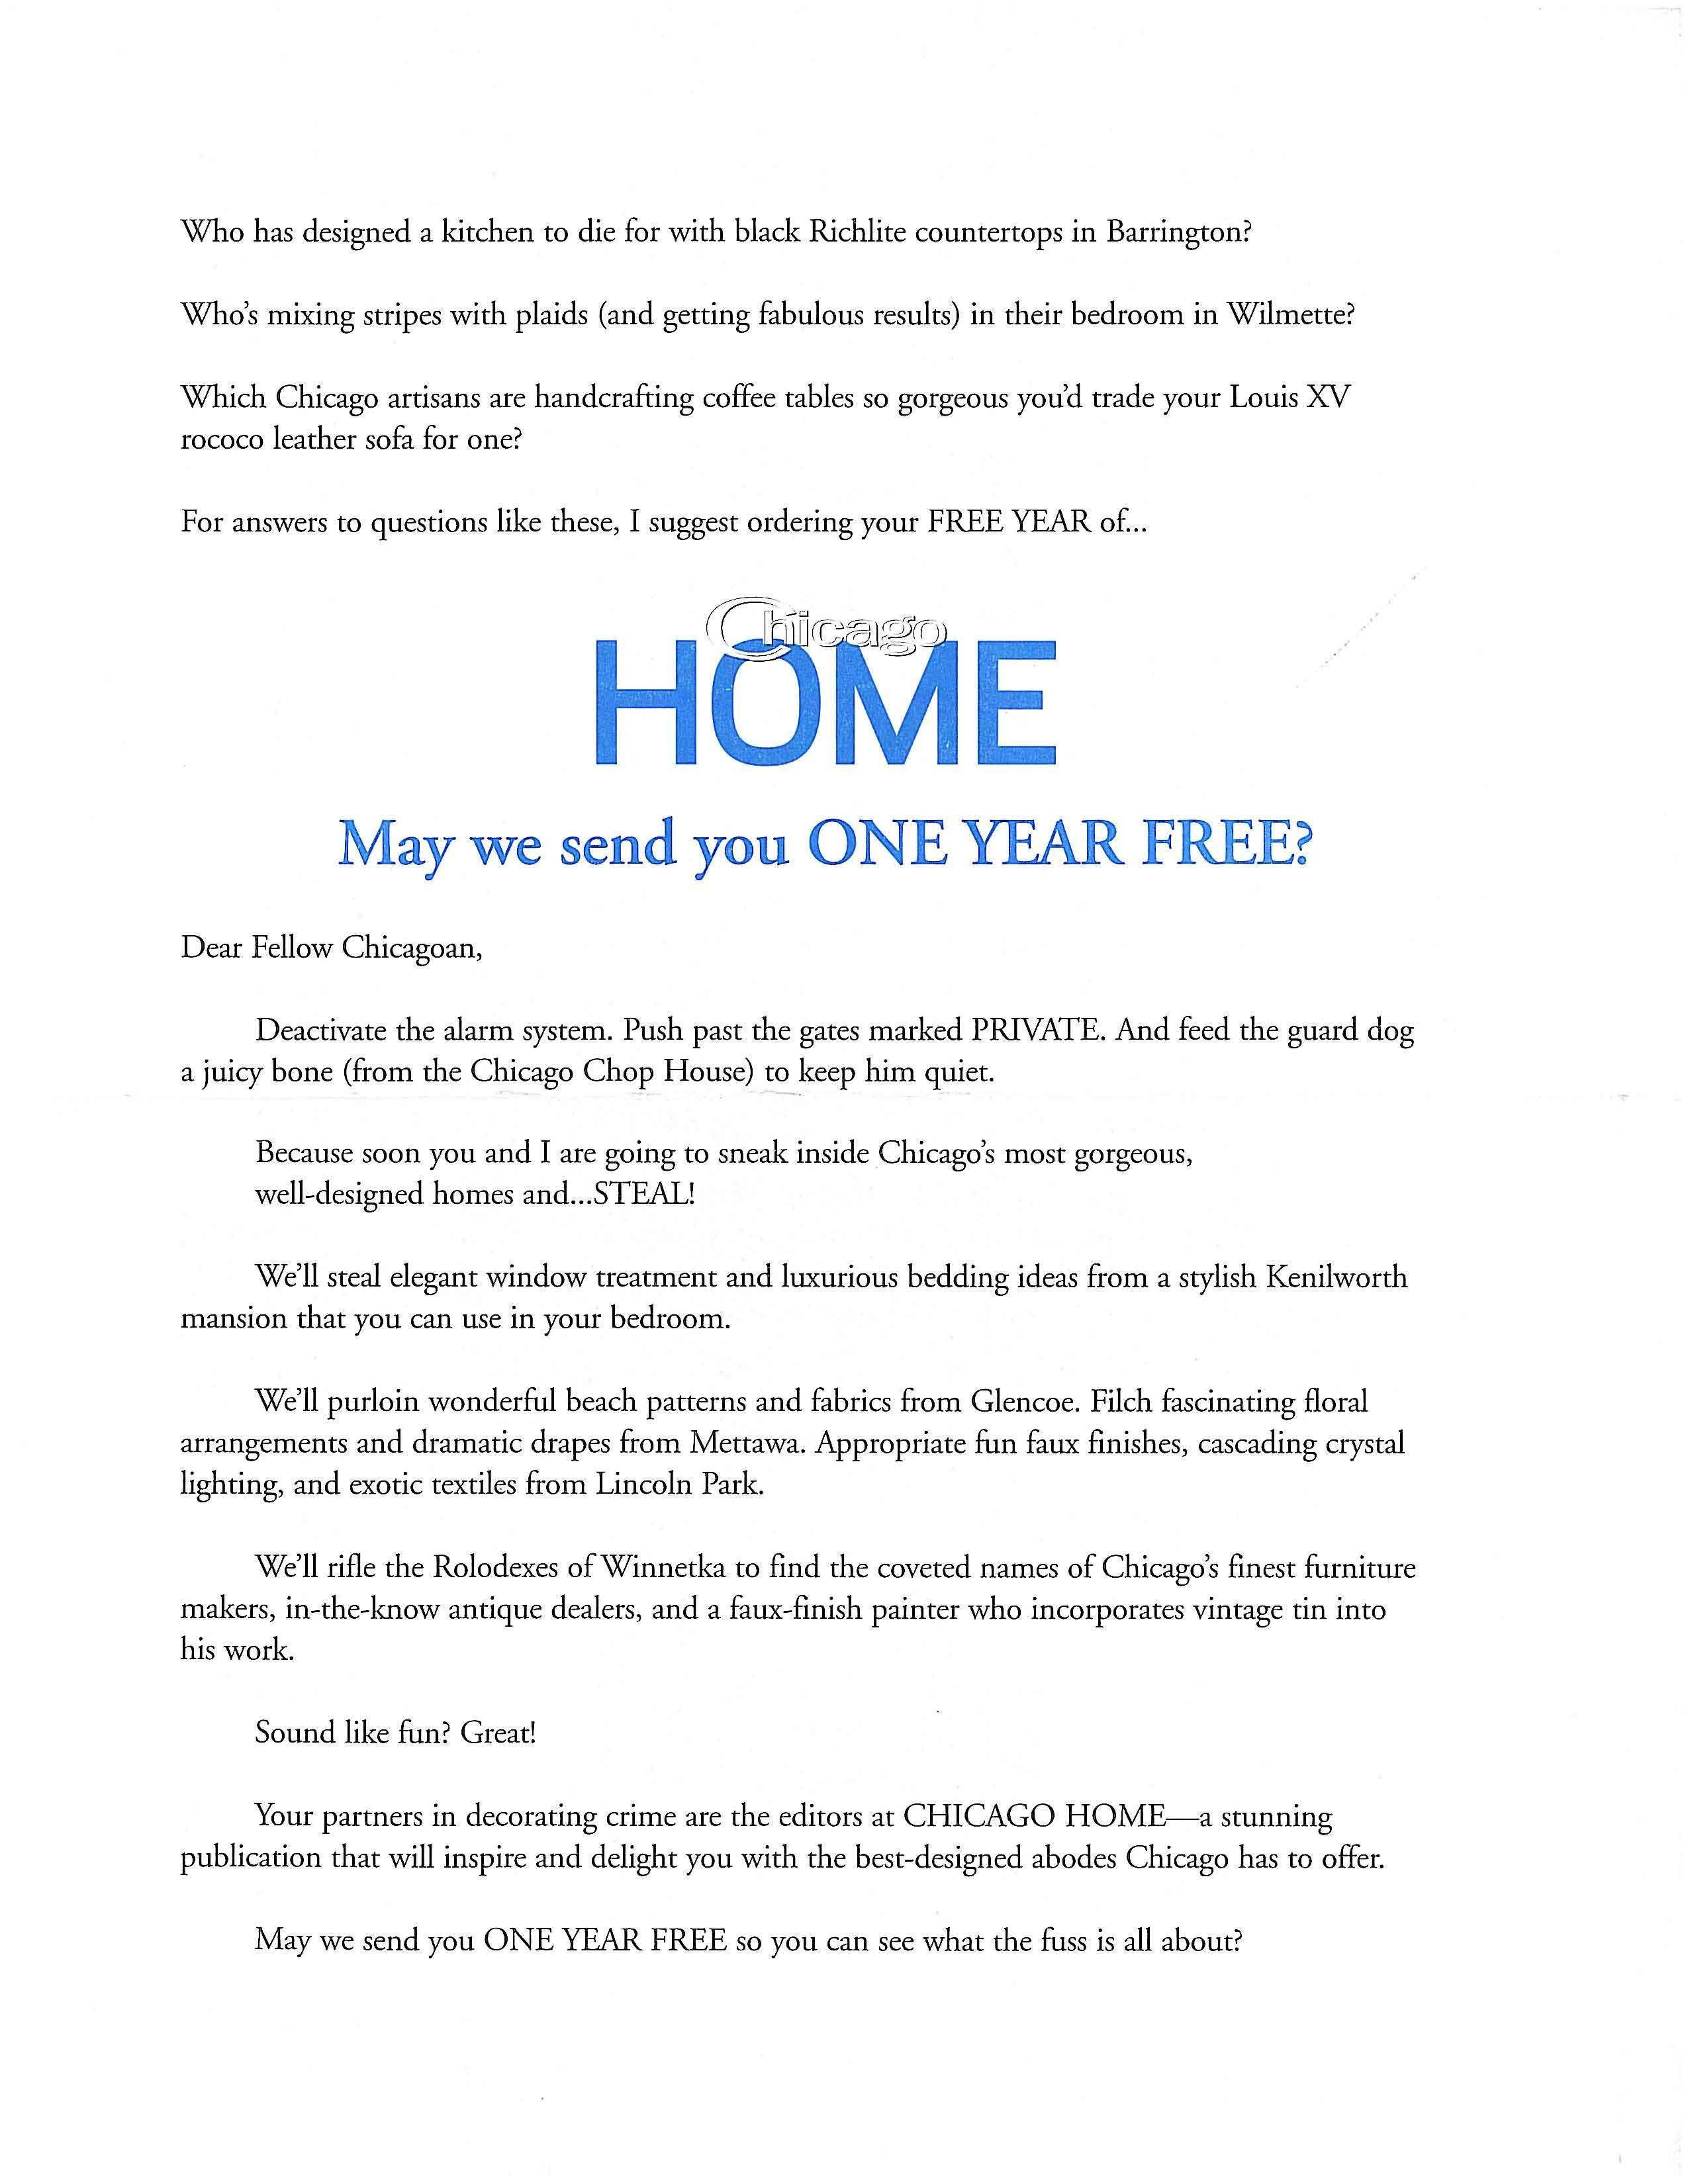 My Direct Mail Sales Letter For Chicago Home Magazine Became A Huge